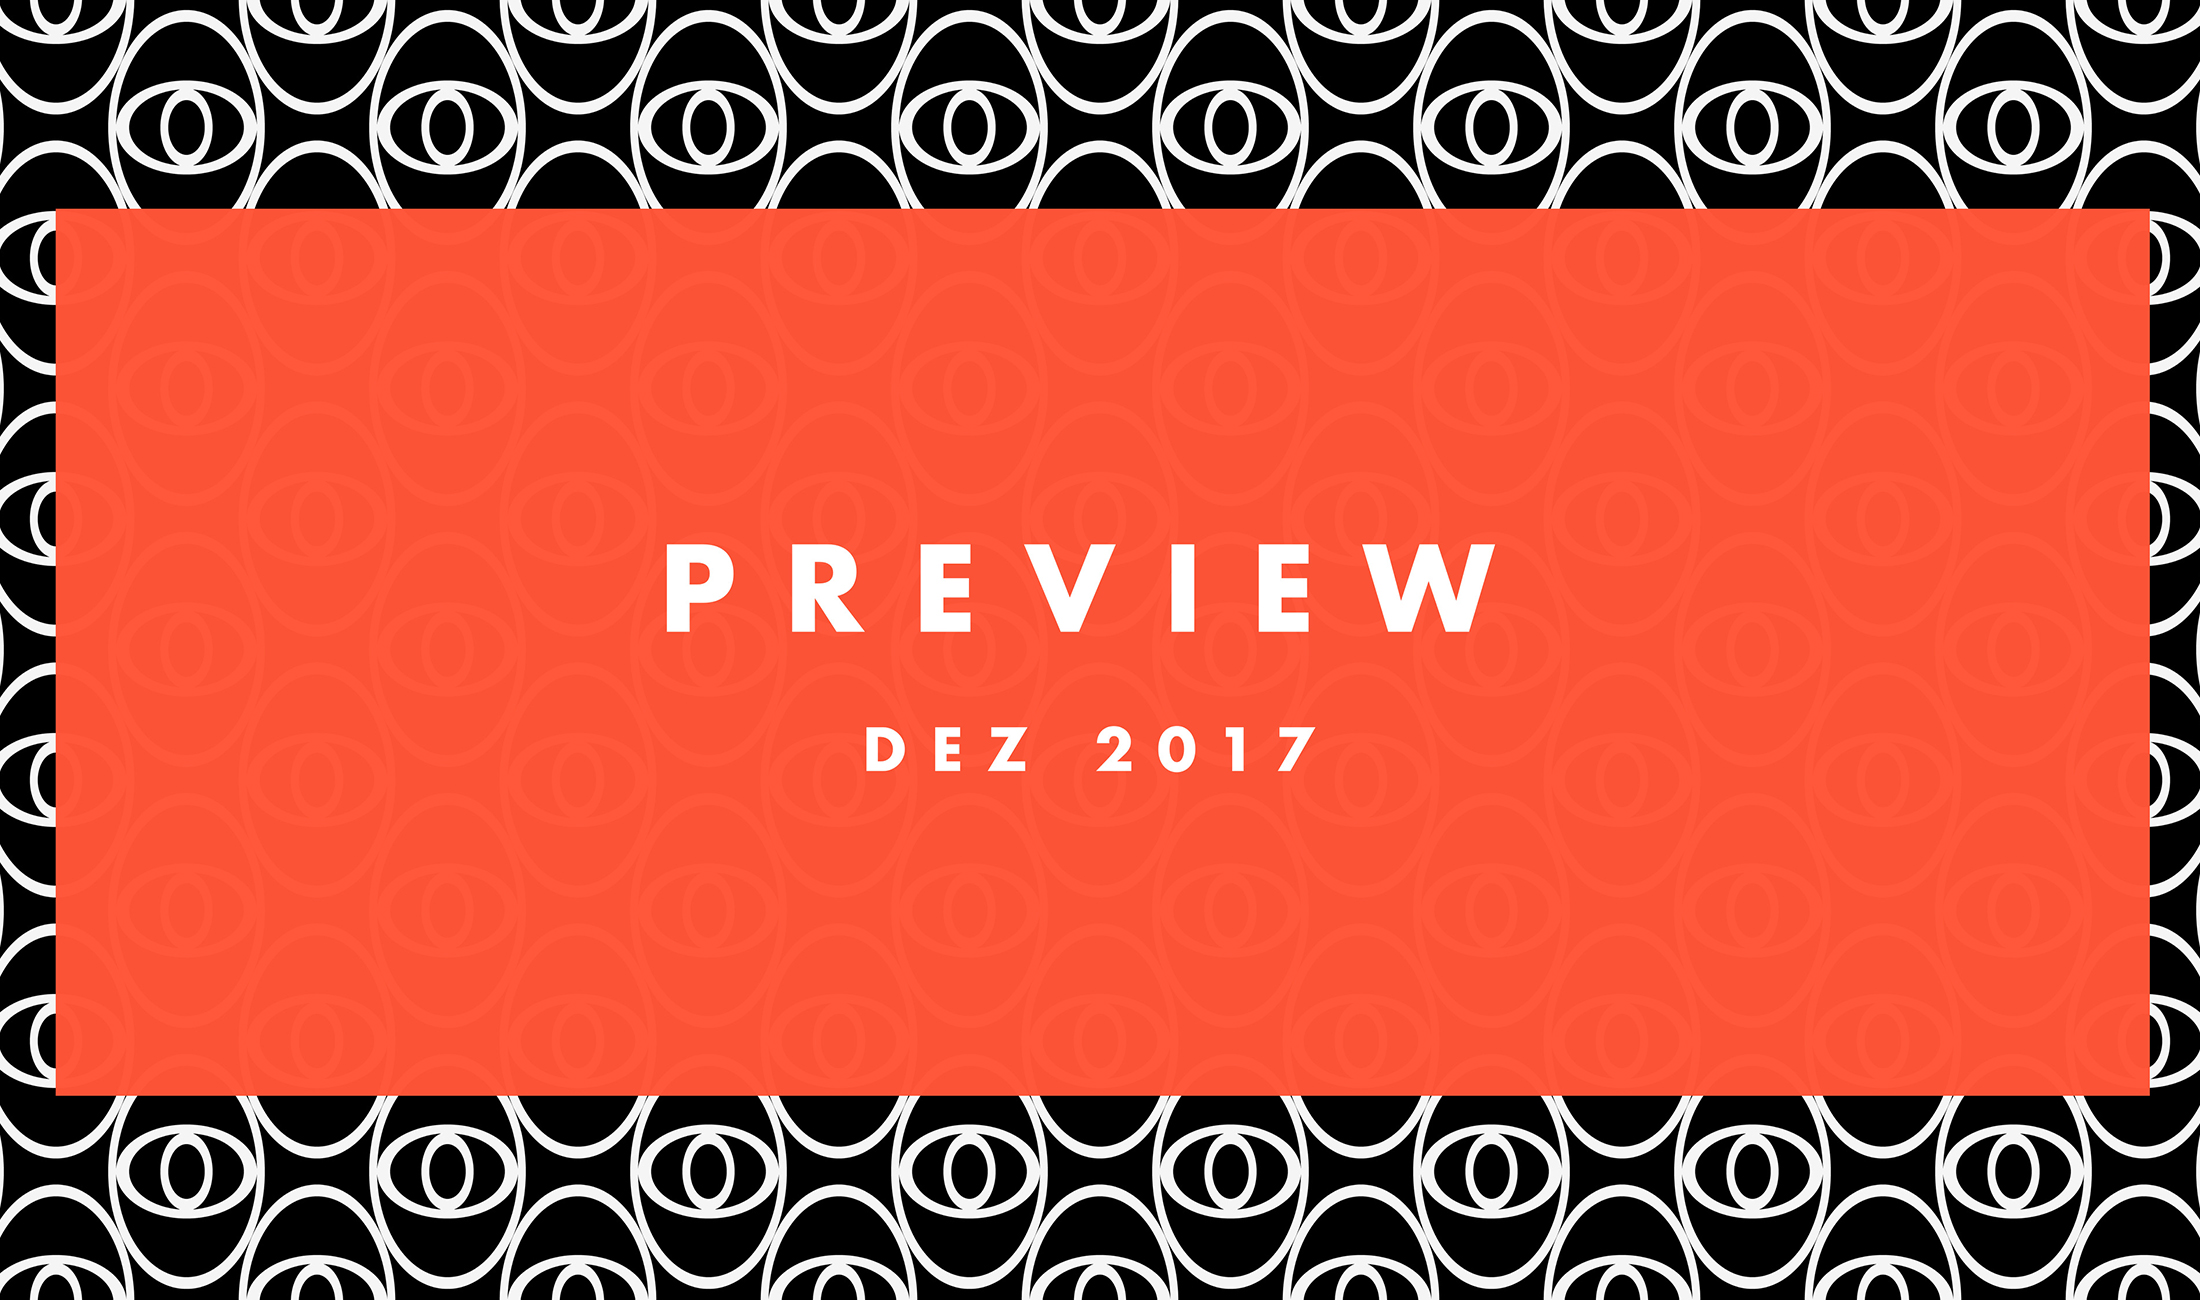 Preview: Upcoming Tracks Dezember 2017